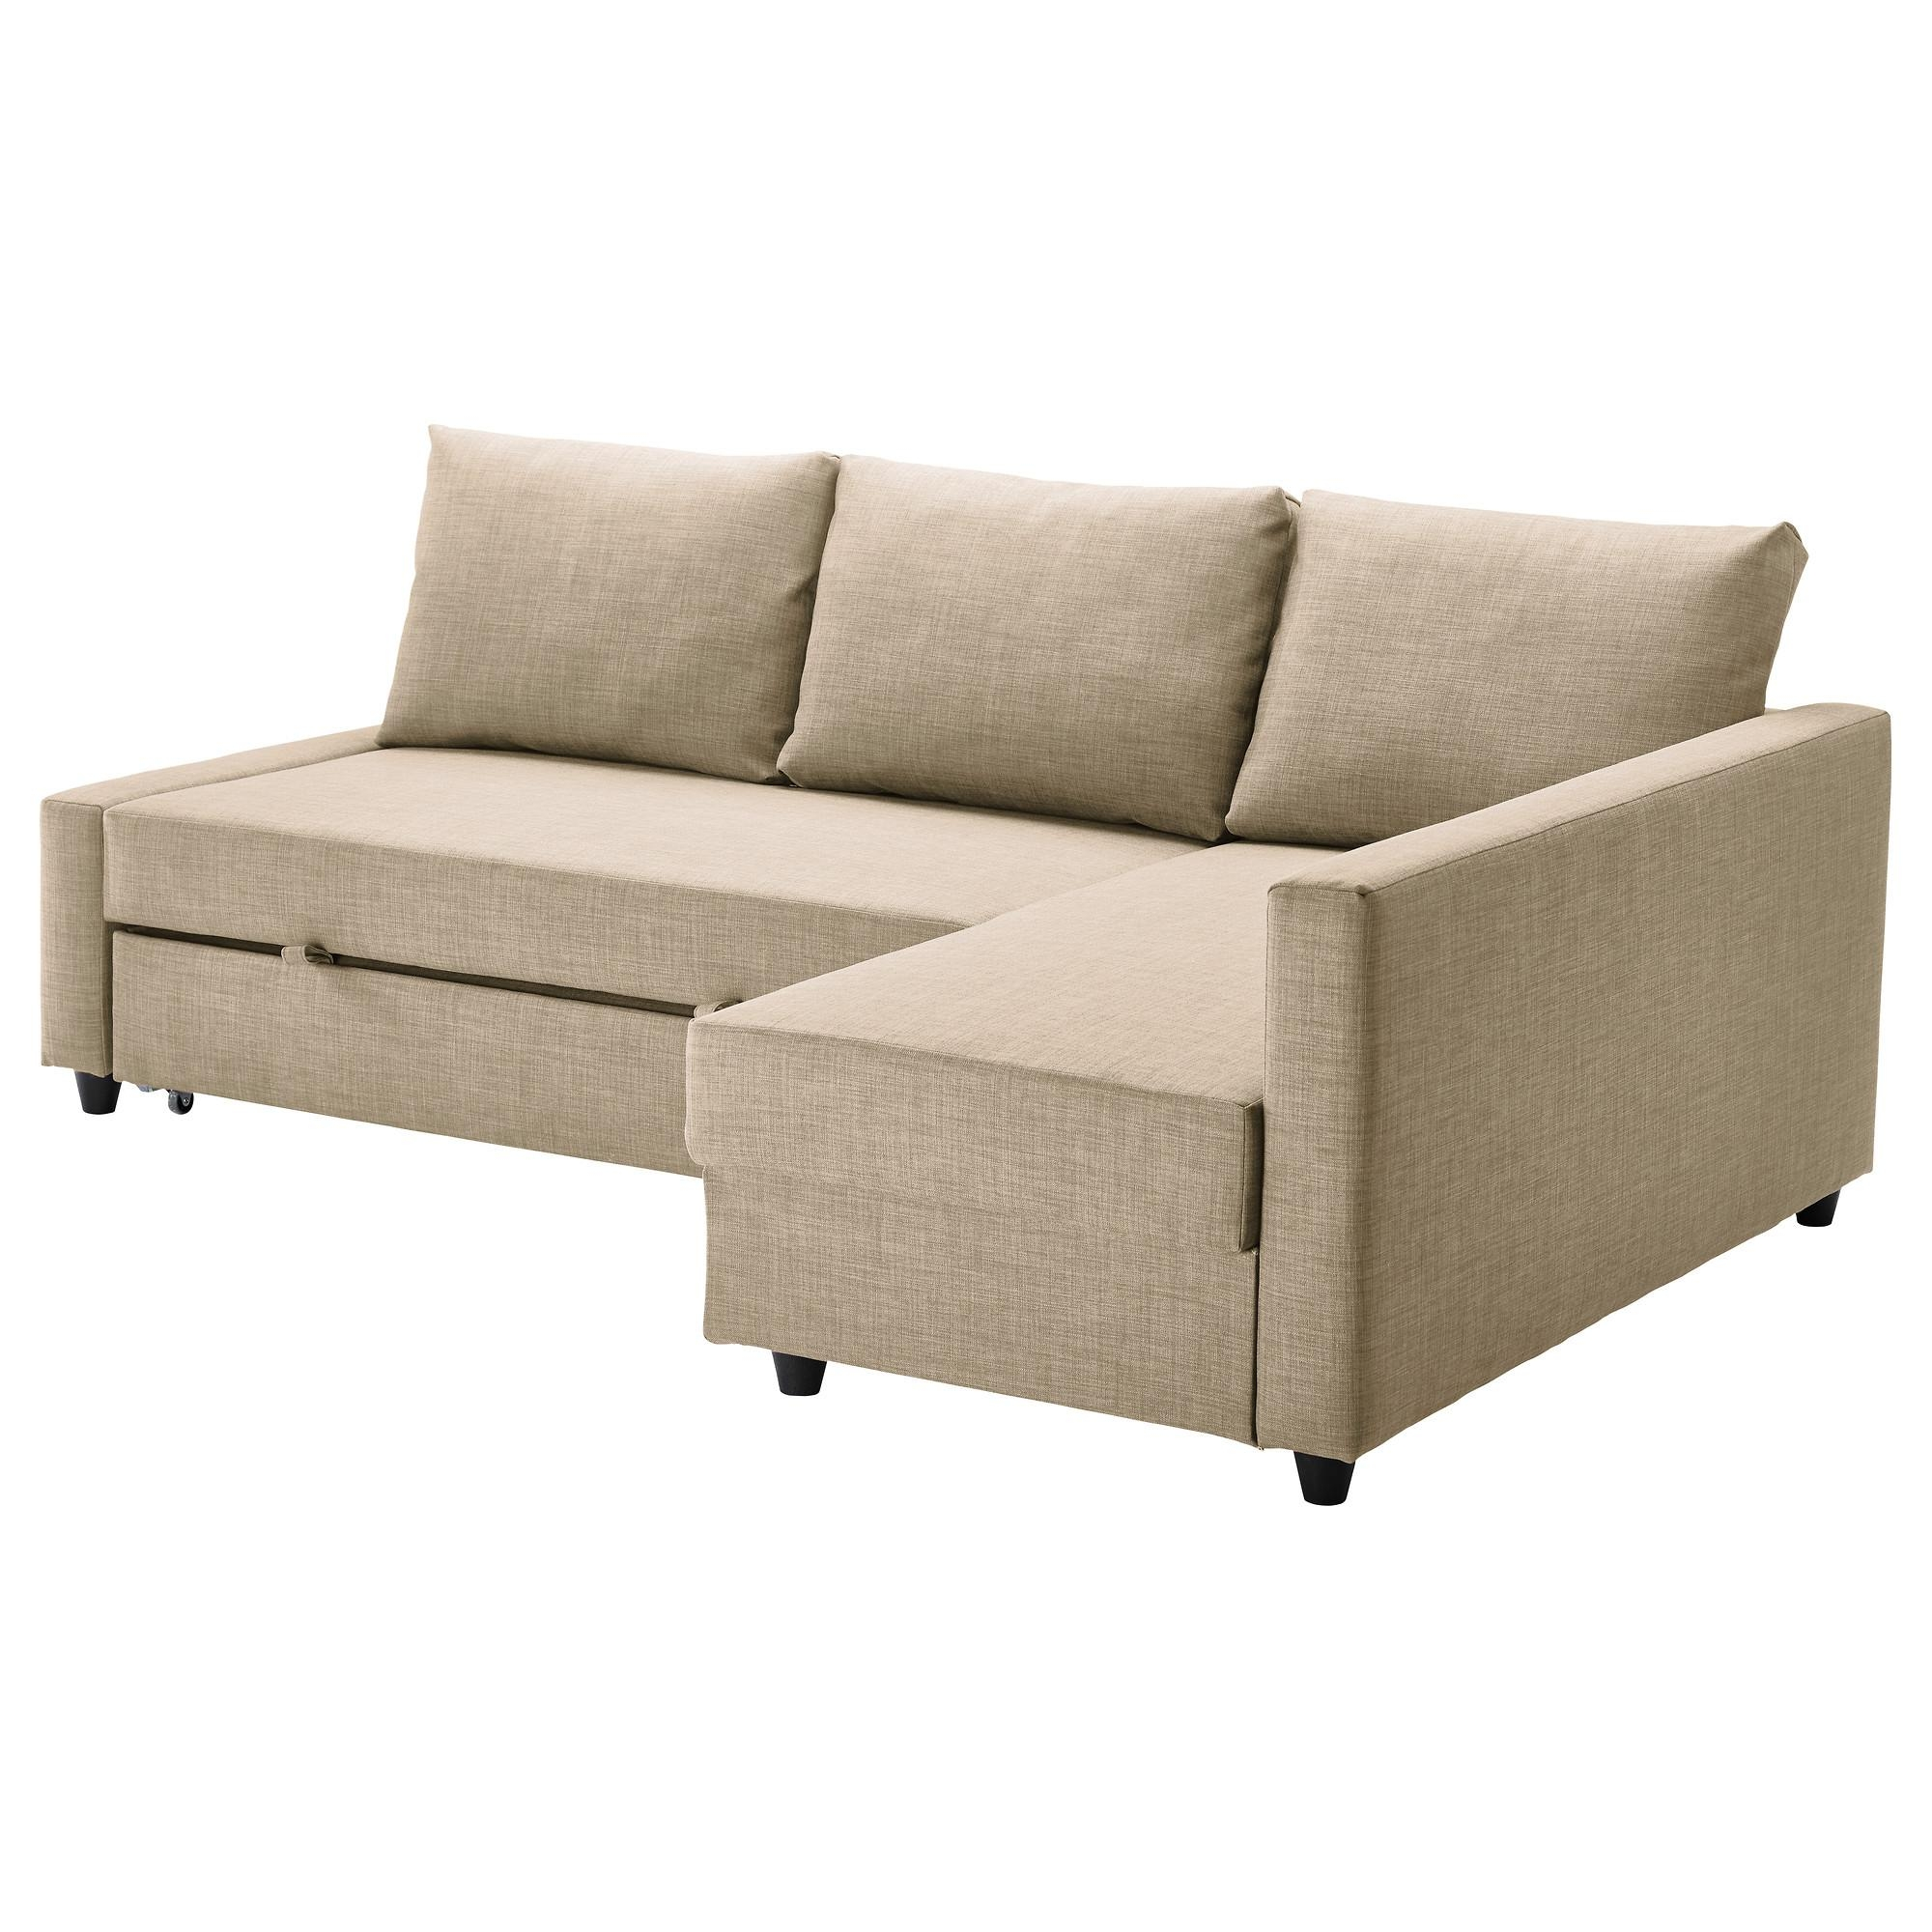 Friheten Sleeper Sectional,3 Seat W/storage – Skiftebo Dark Gray Intended For Ikea Sectional Sofa Sleeper (View 7 of 20)